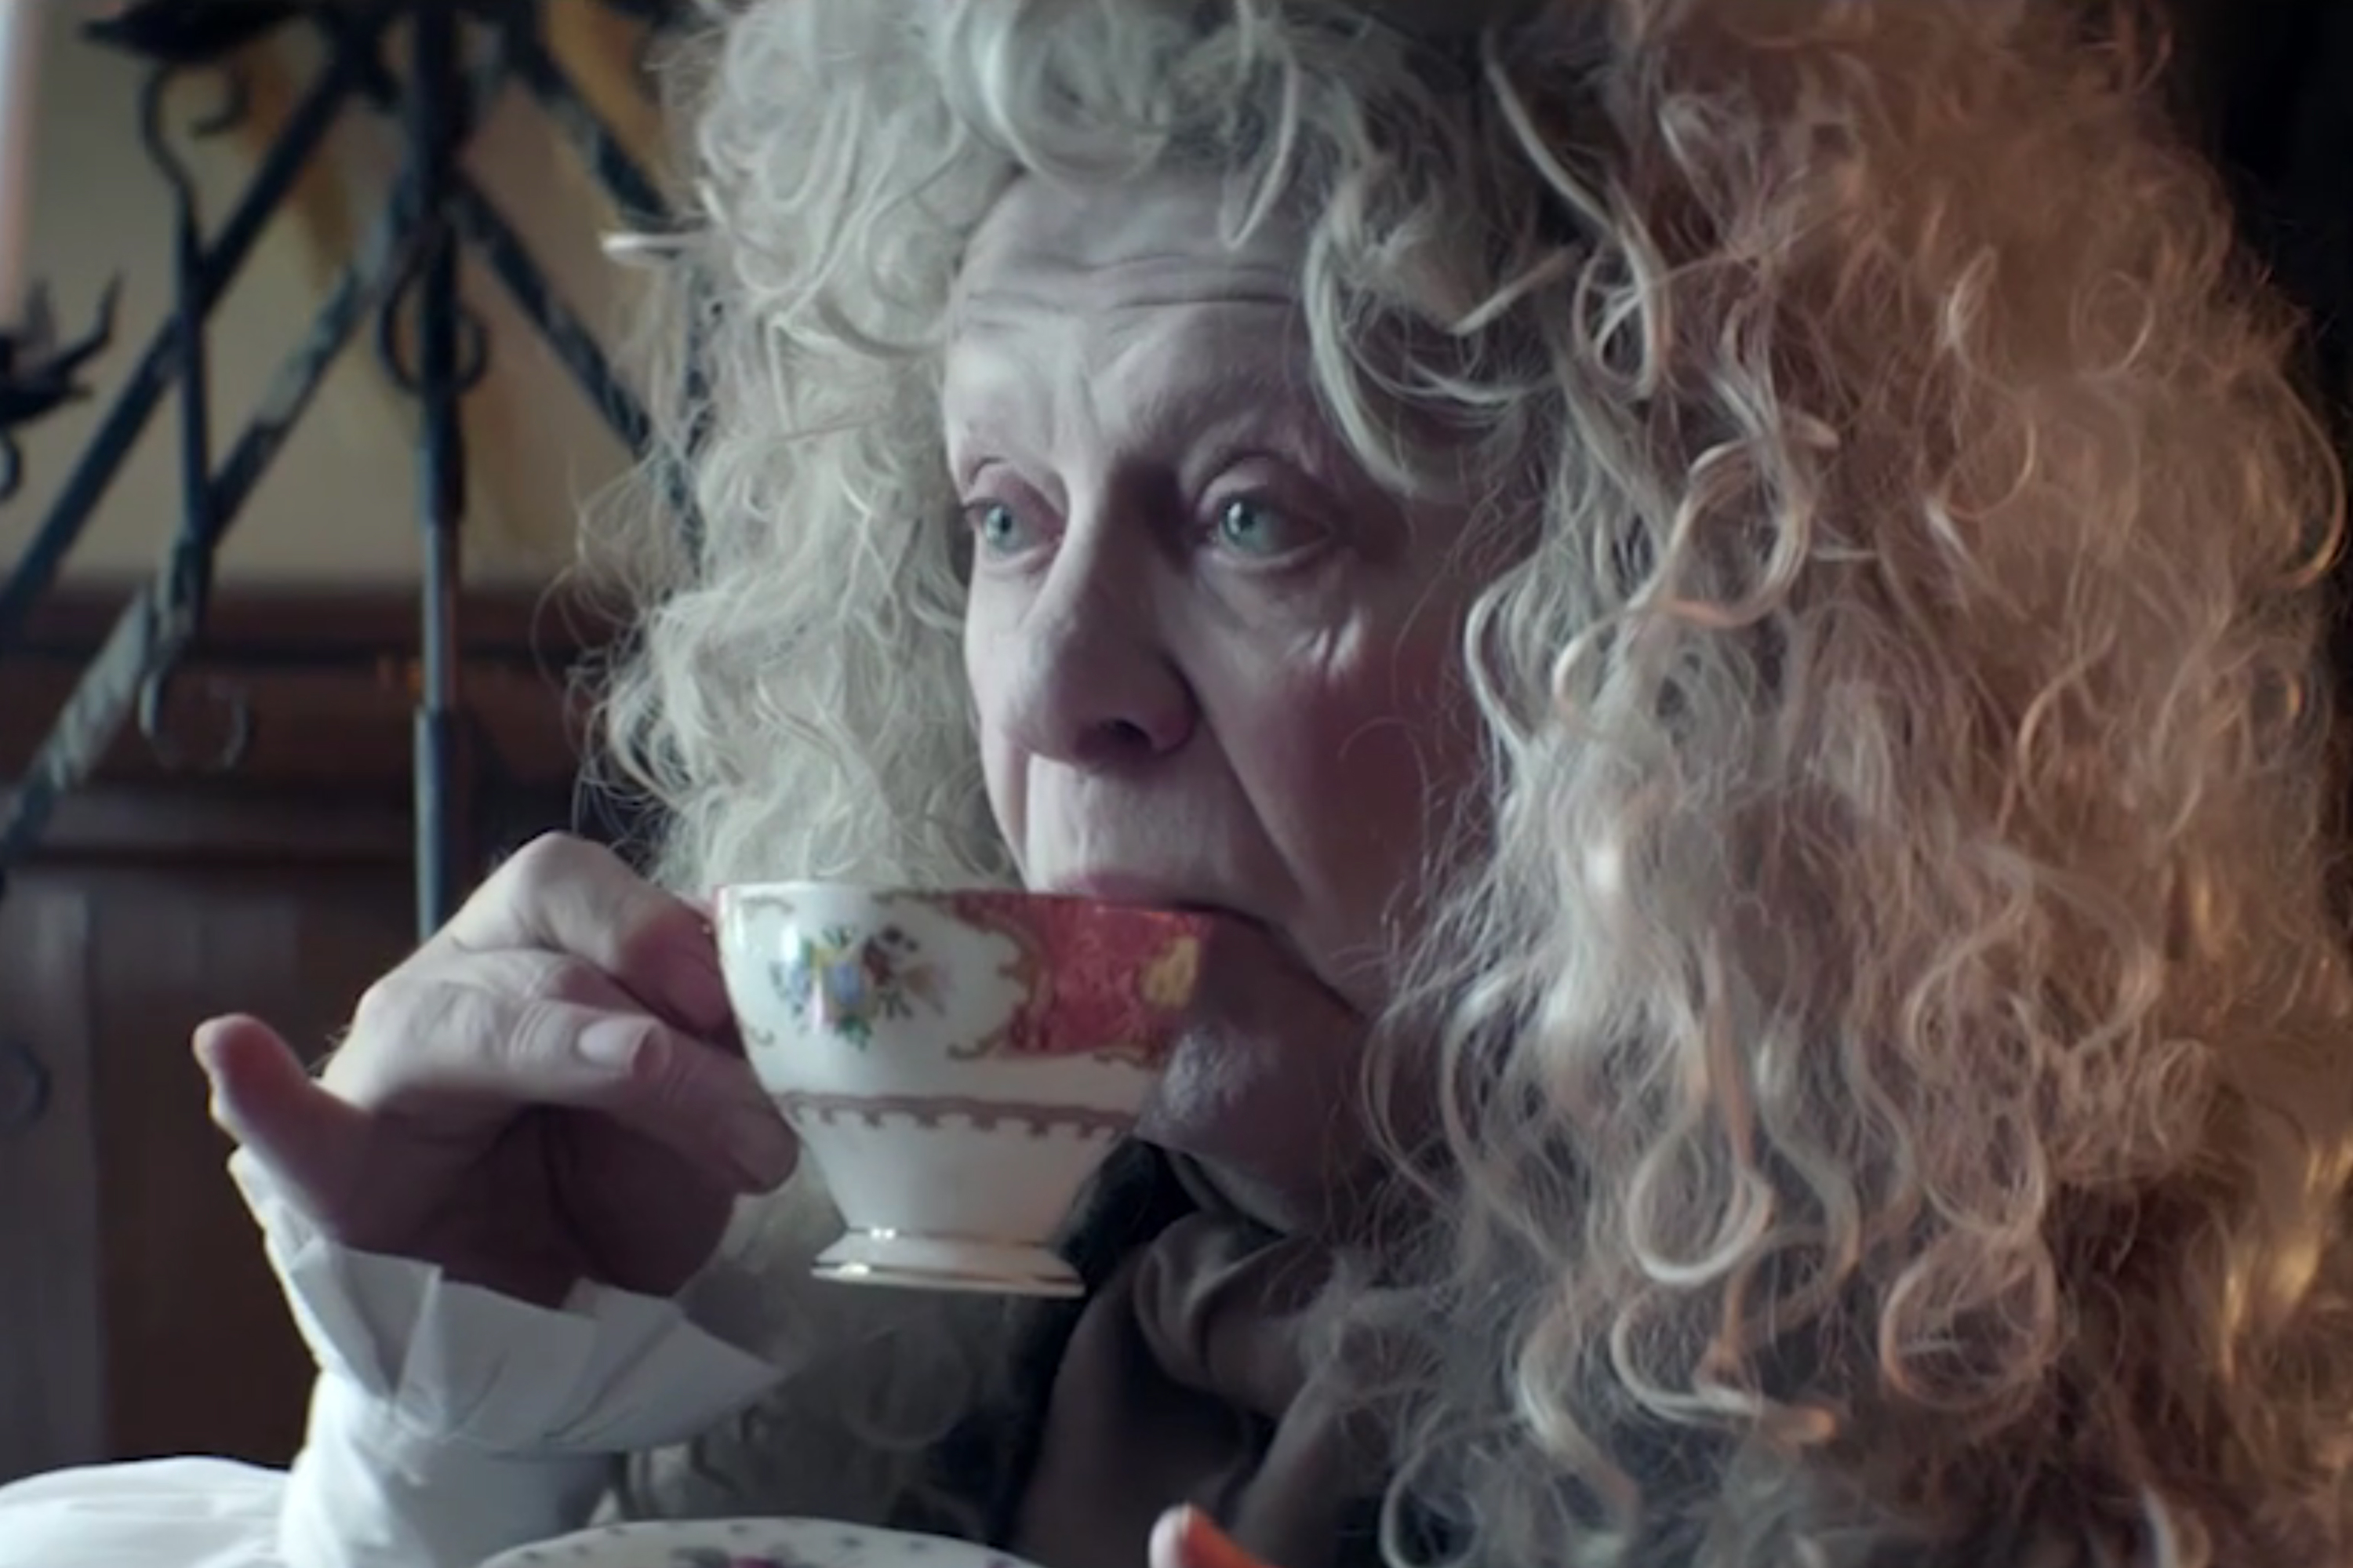 Twinings North America has a modern humor take on its founder's tea shop in a new campaign.